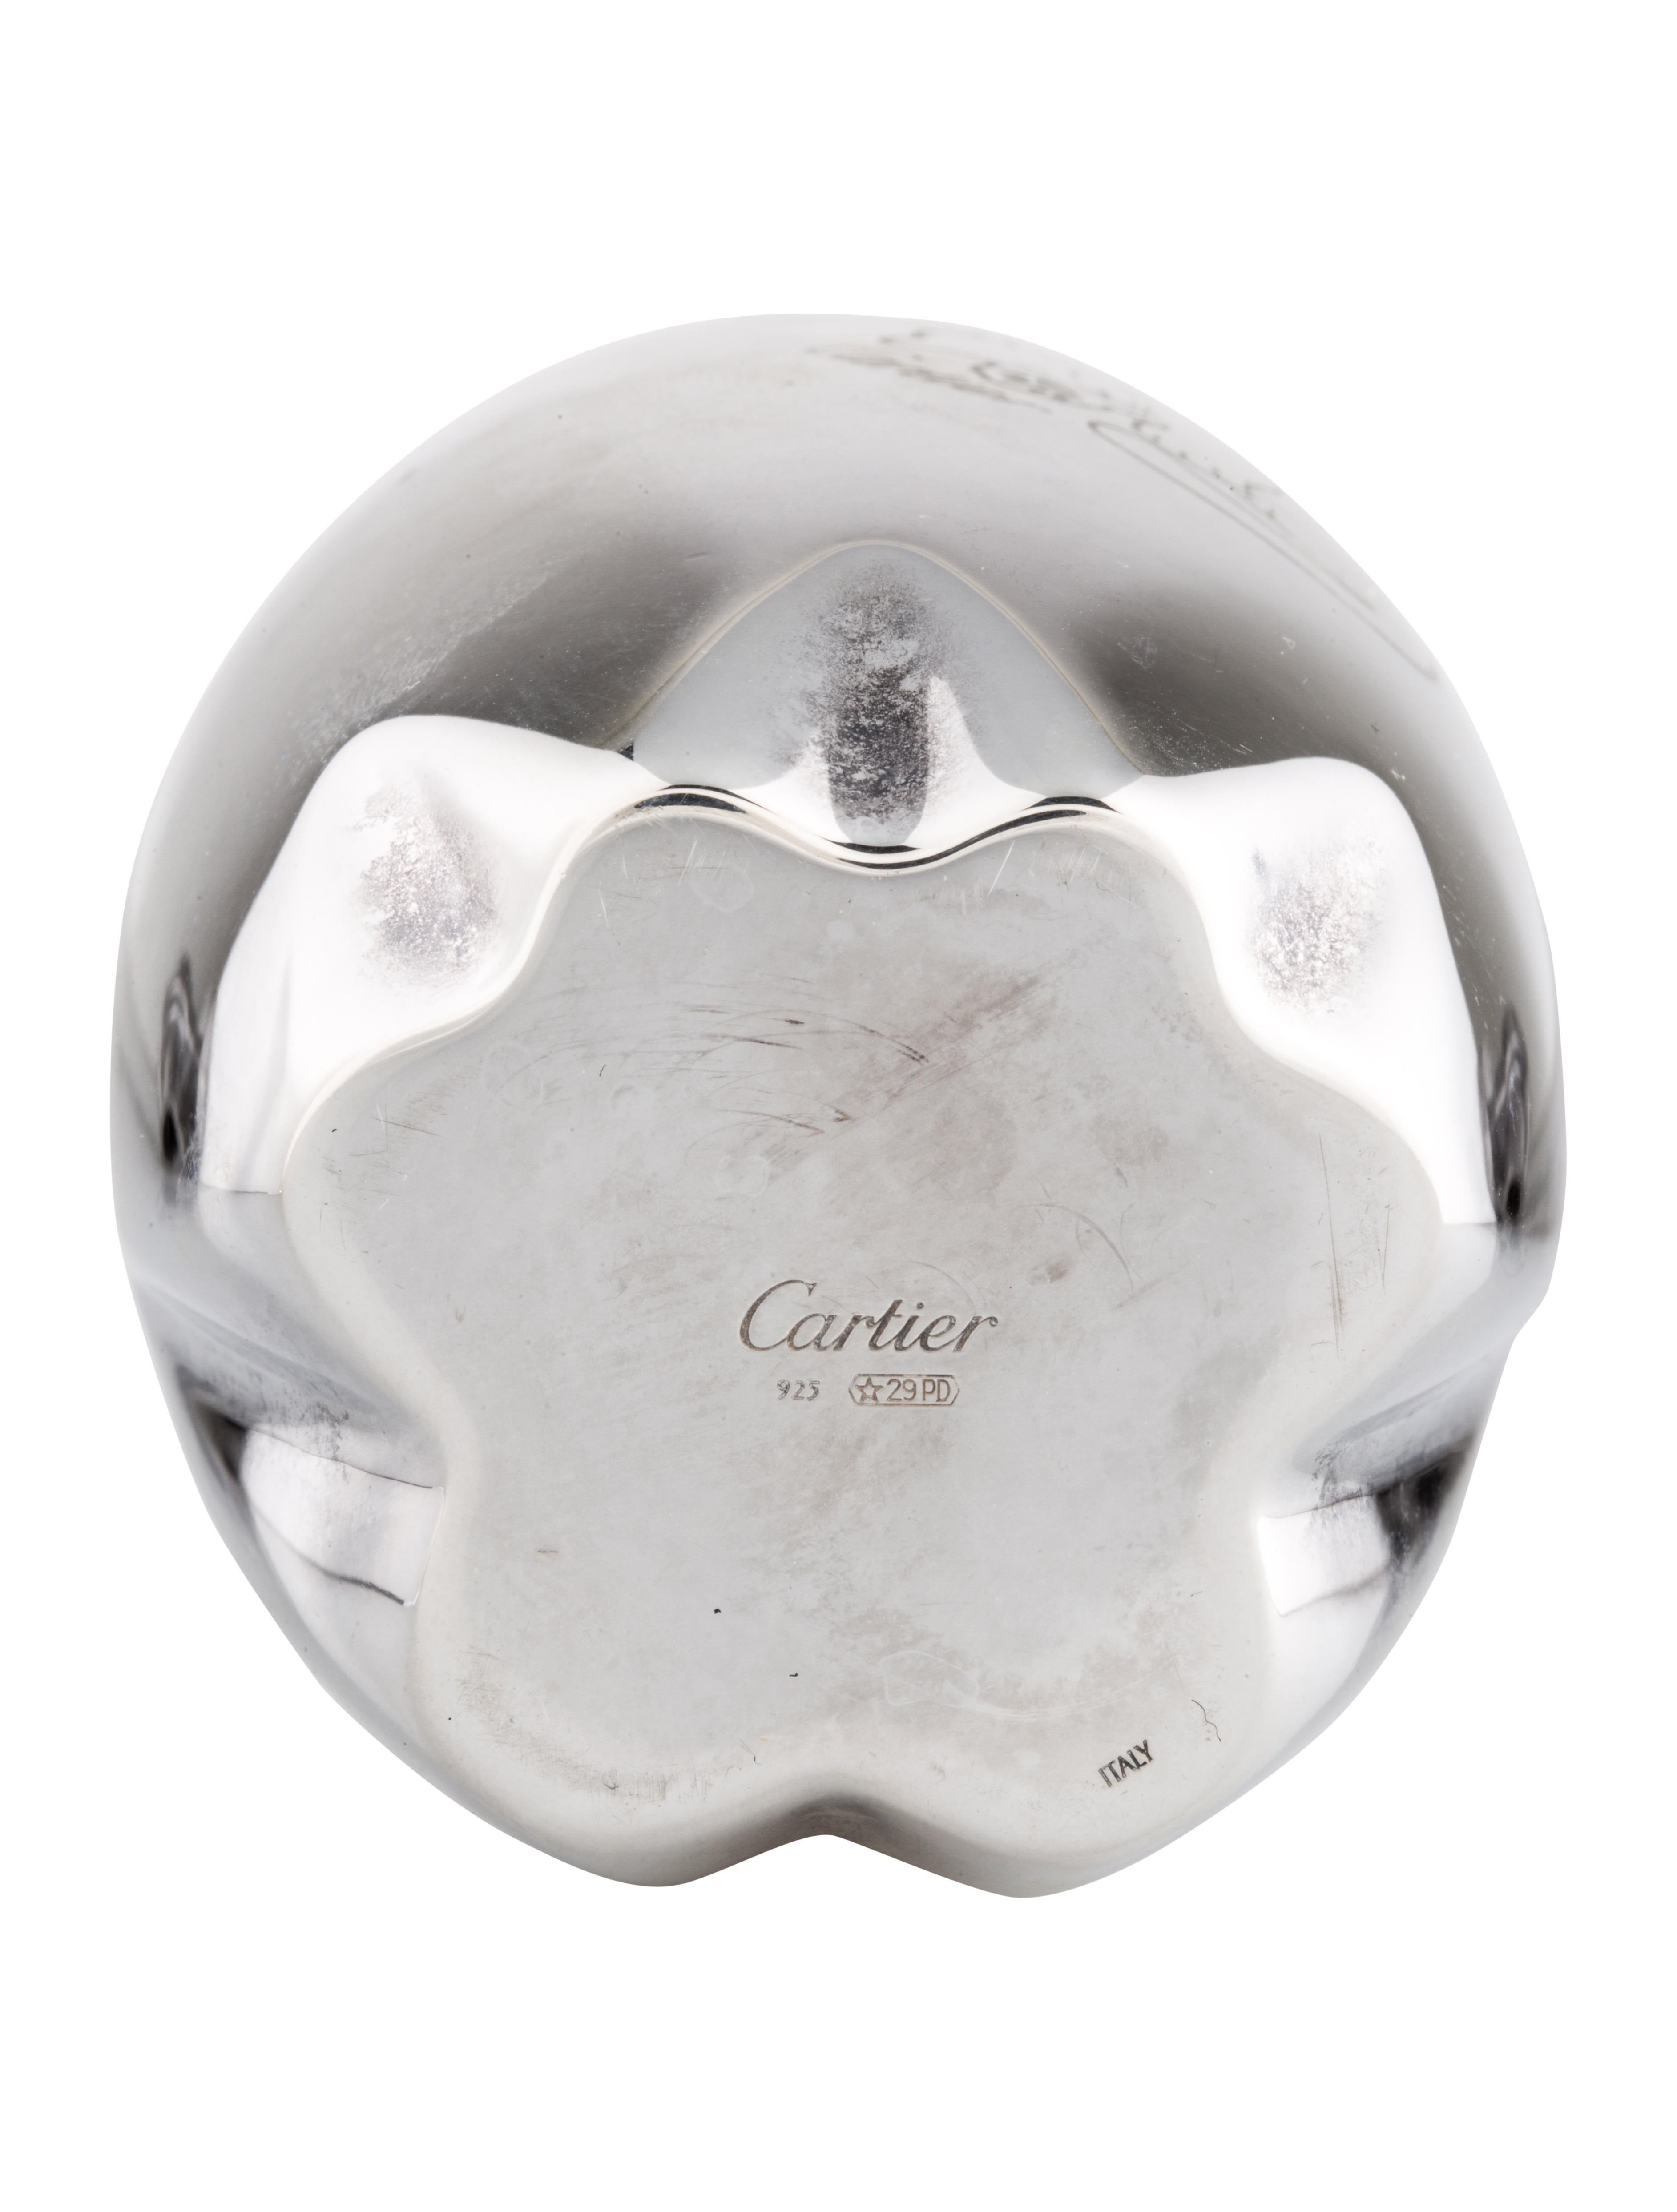 Cartier Sterling Silver Baby Cup Toys And Gifts